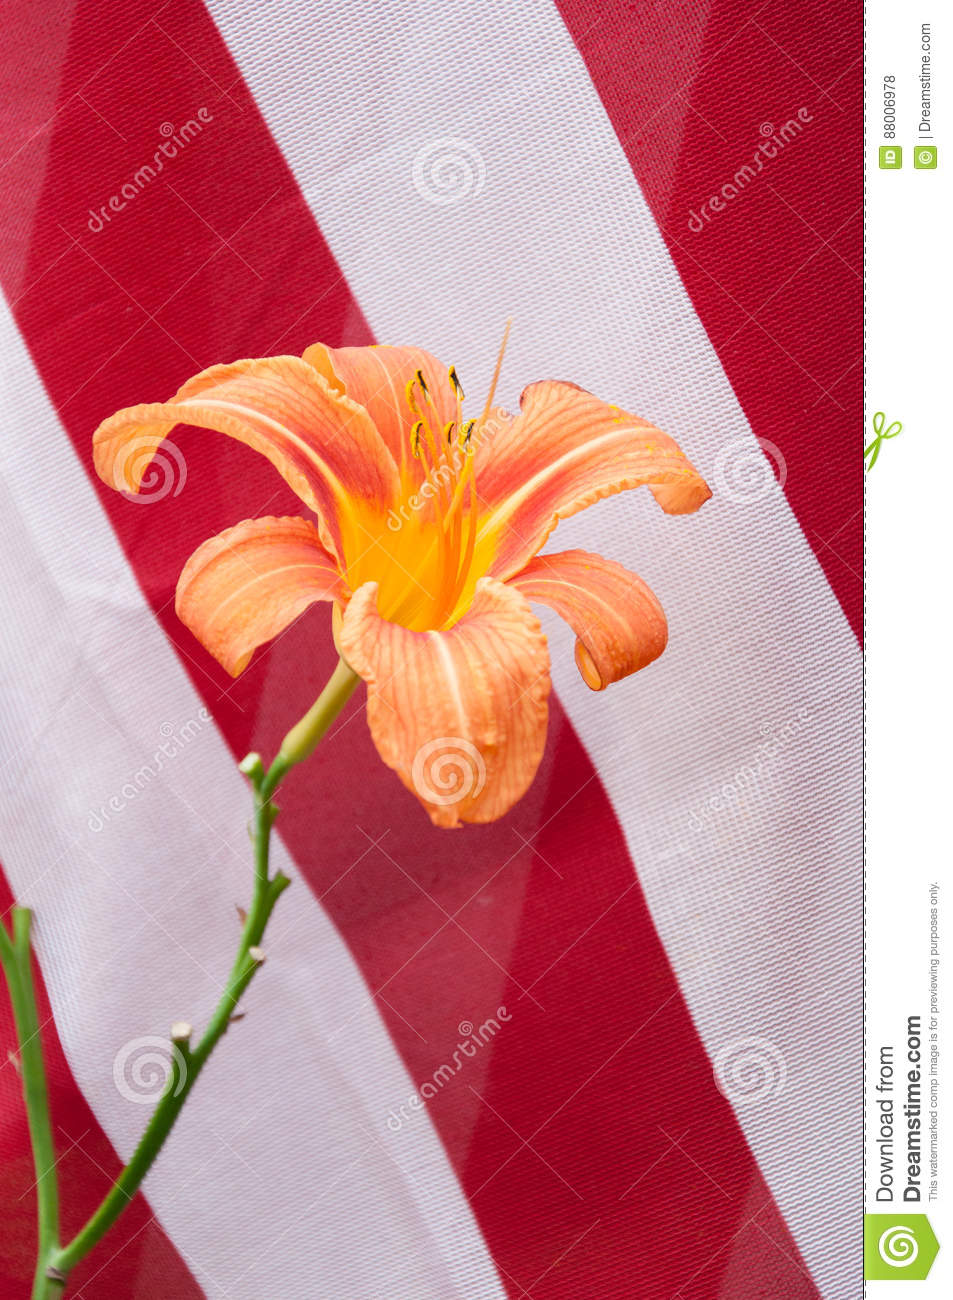 Orange day lily with red and white stripes of us flag stock photo download orange day lily with red and white stripes of us flag stock photo image mightylinksfo